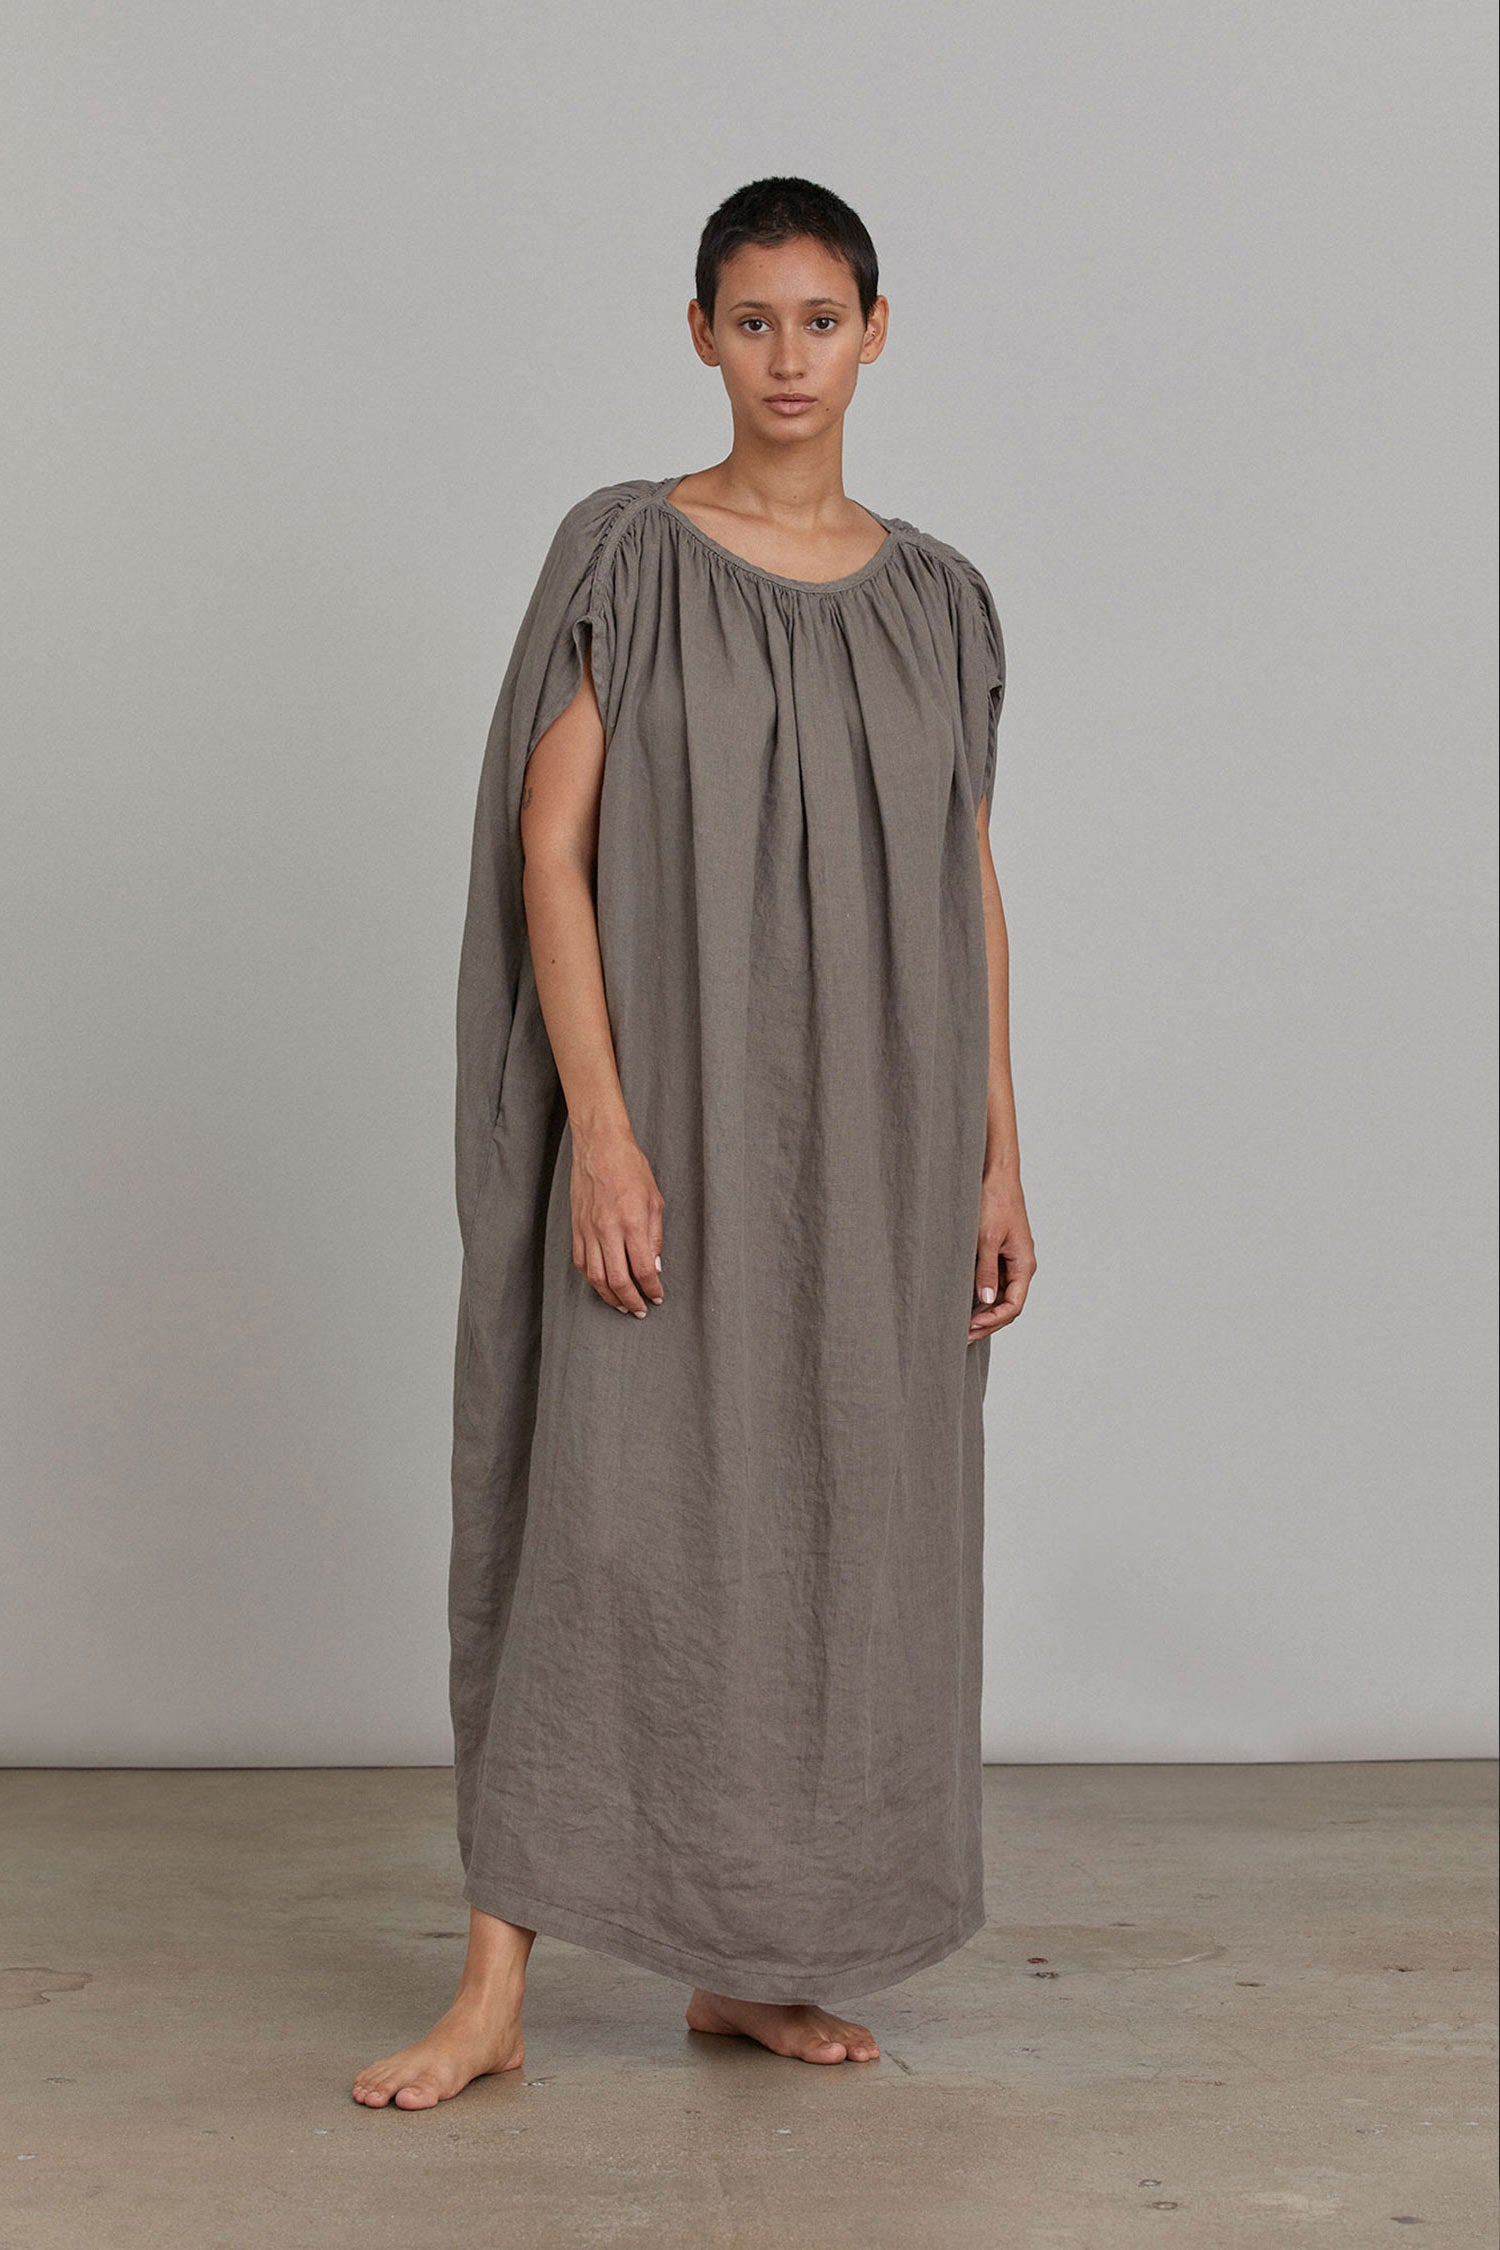 MONT BLANC DRESS / GRAY